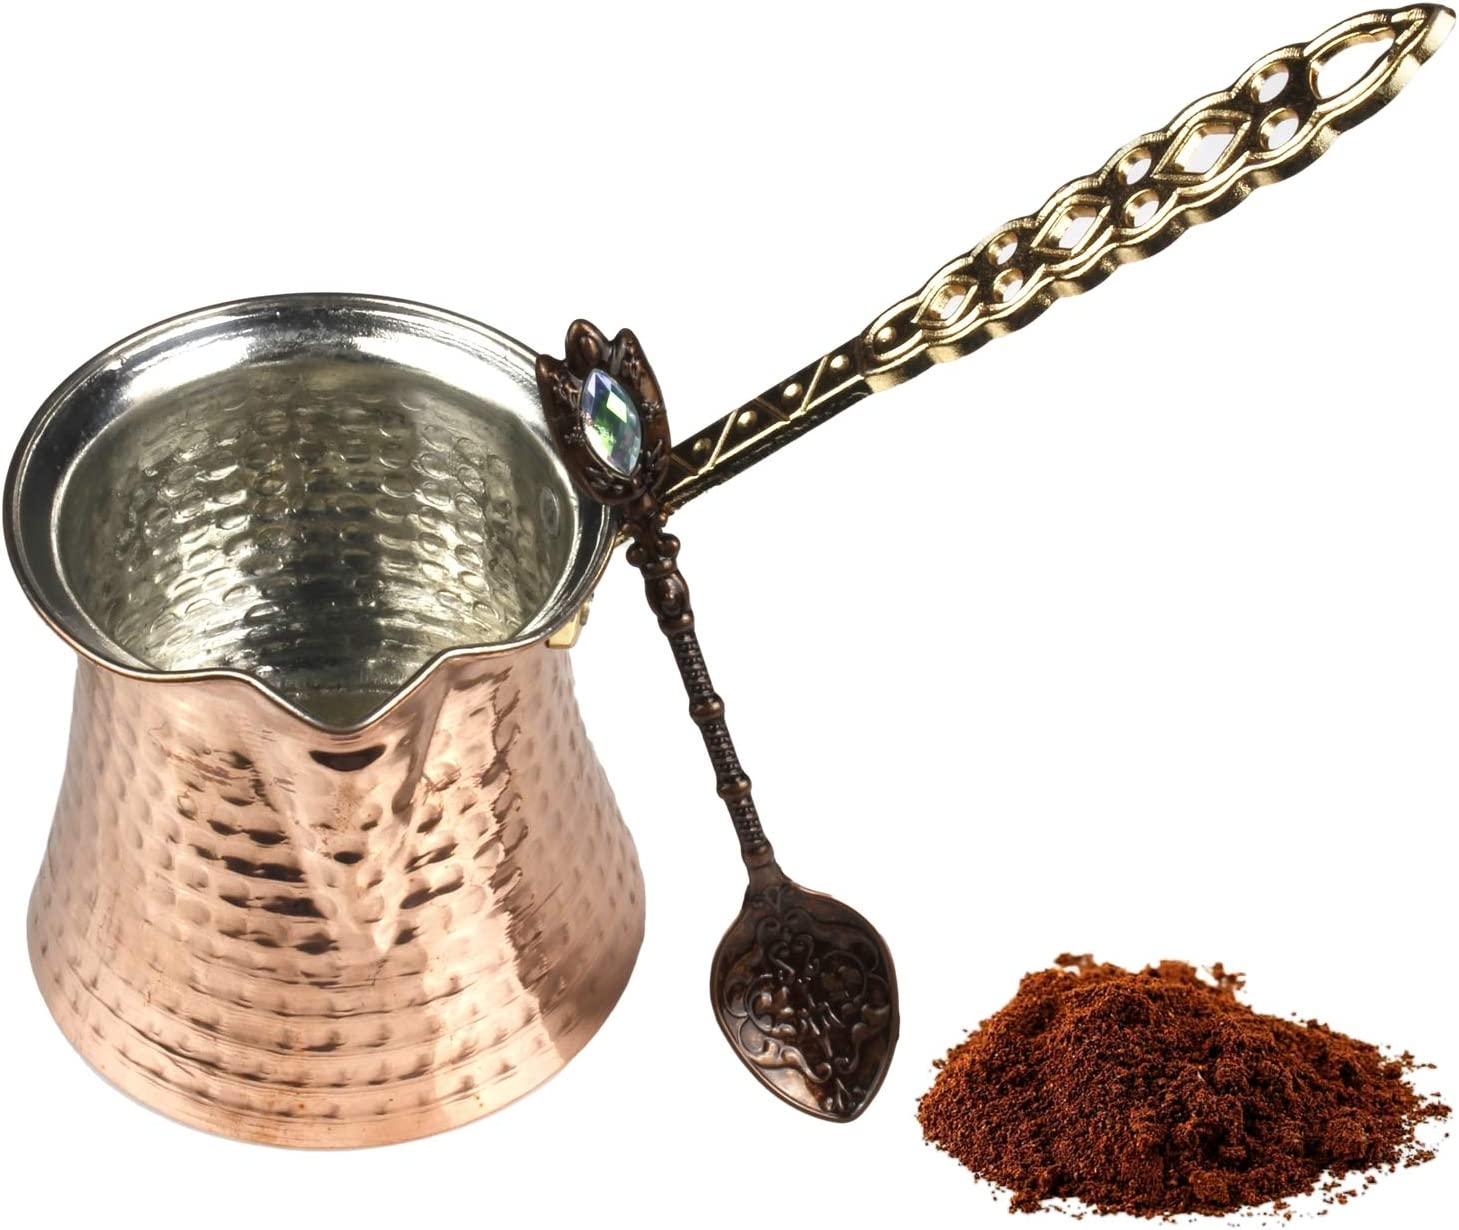 Turkish Coffee Pot and Copper Spoon Set - 9 Oz Thick 2mm Antique Copper Looking - Stove top Coffee Maker Cezve with Copper Handle & Copper Spoon - for 3 People